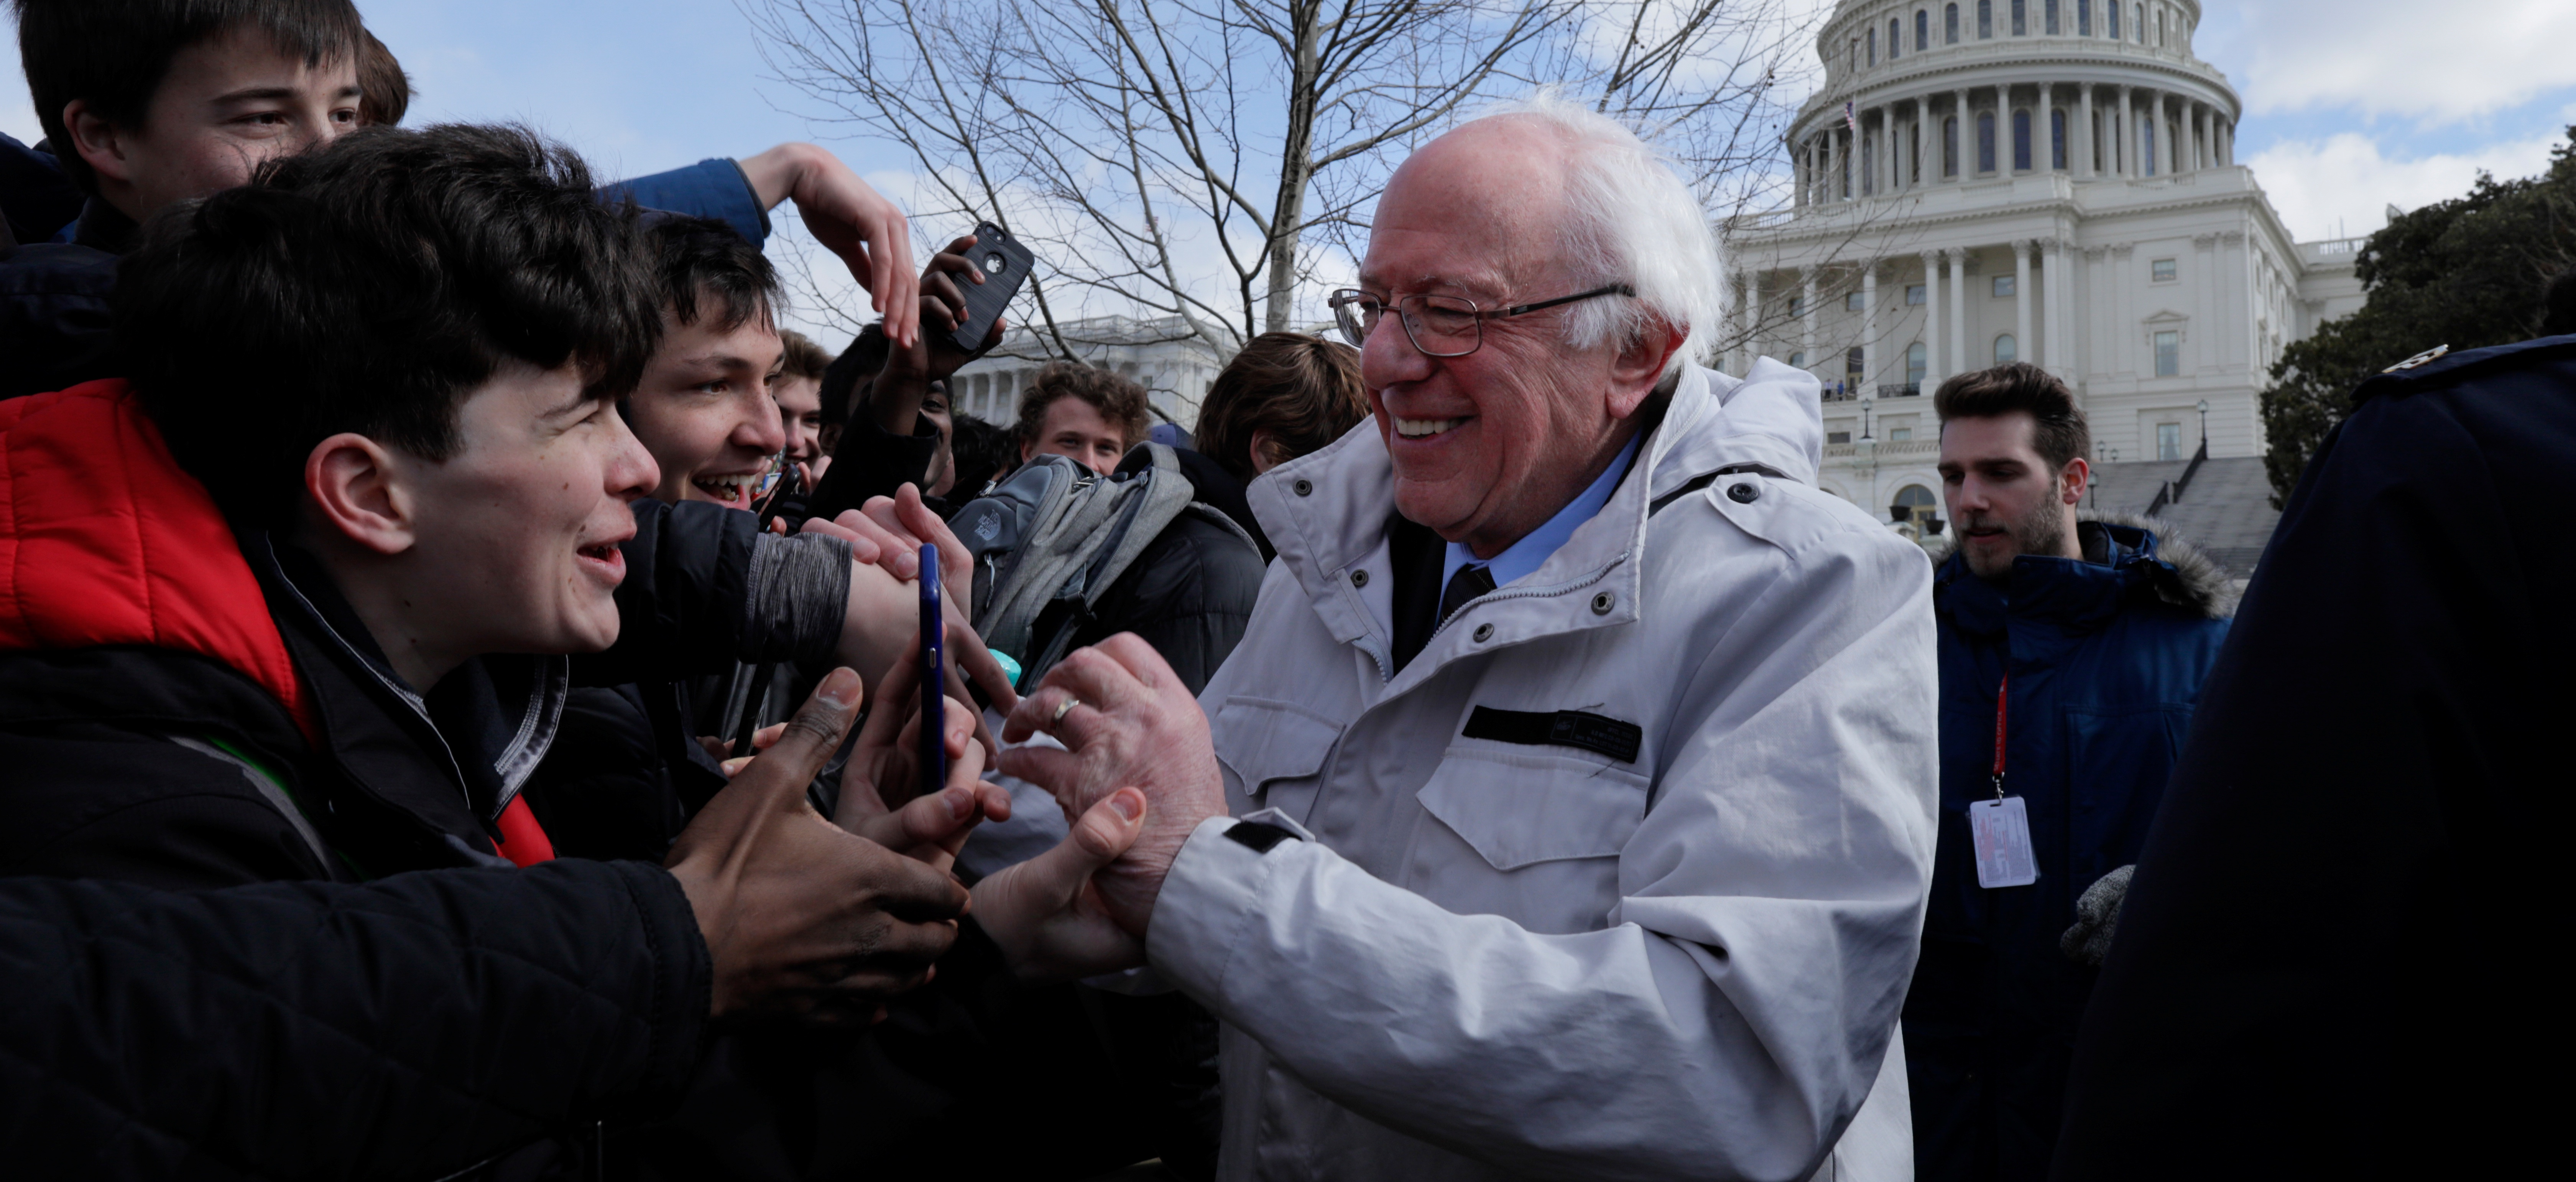 U.S. Senator Bernie Sanders (I-VT) greets students gathering outside the U.S. Capitol as part of a nationwide walk-out of classes to demand stricter gun laws in Washington, U.S., March 14, 2018. REUTERS/Jim Bourg